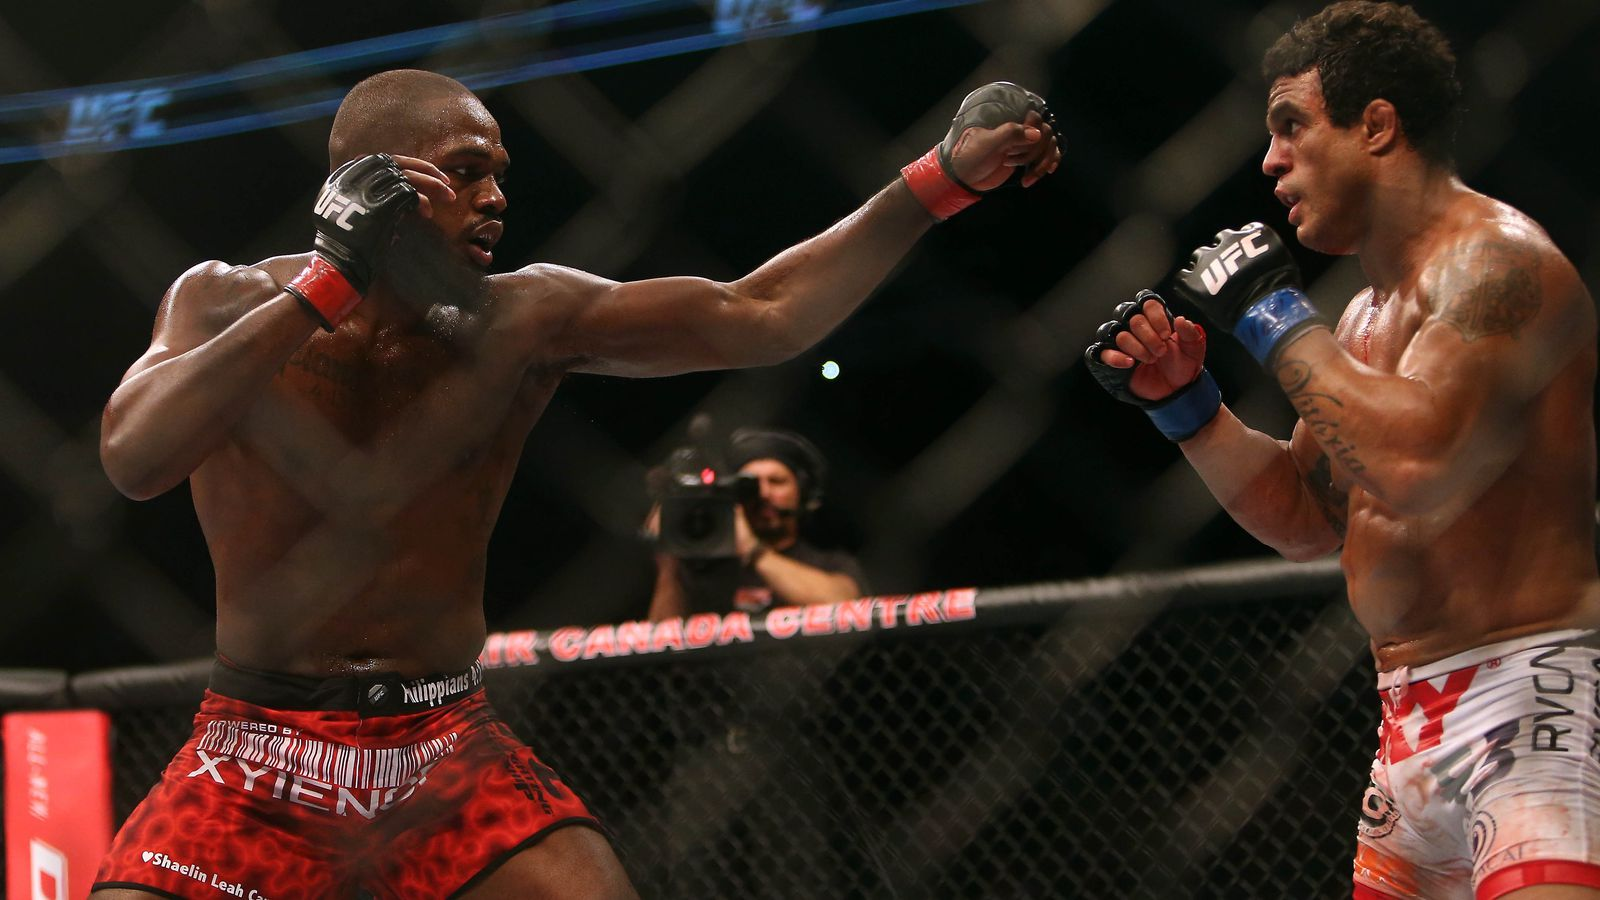 Is Jon Jones' Reach An Unfair Advantage?